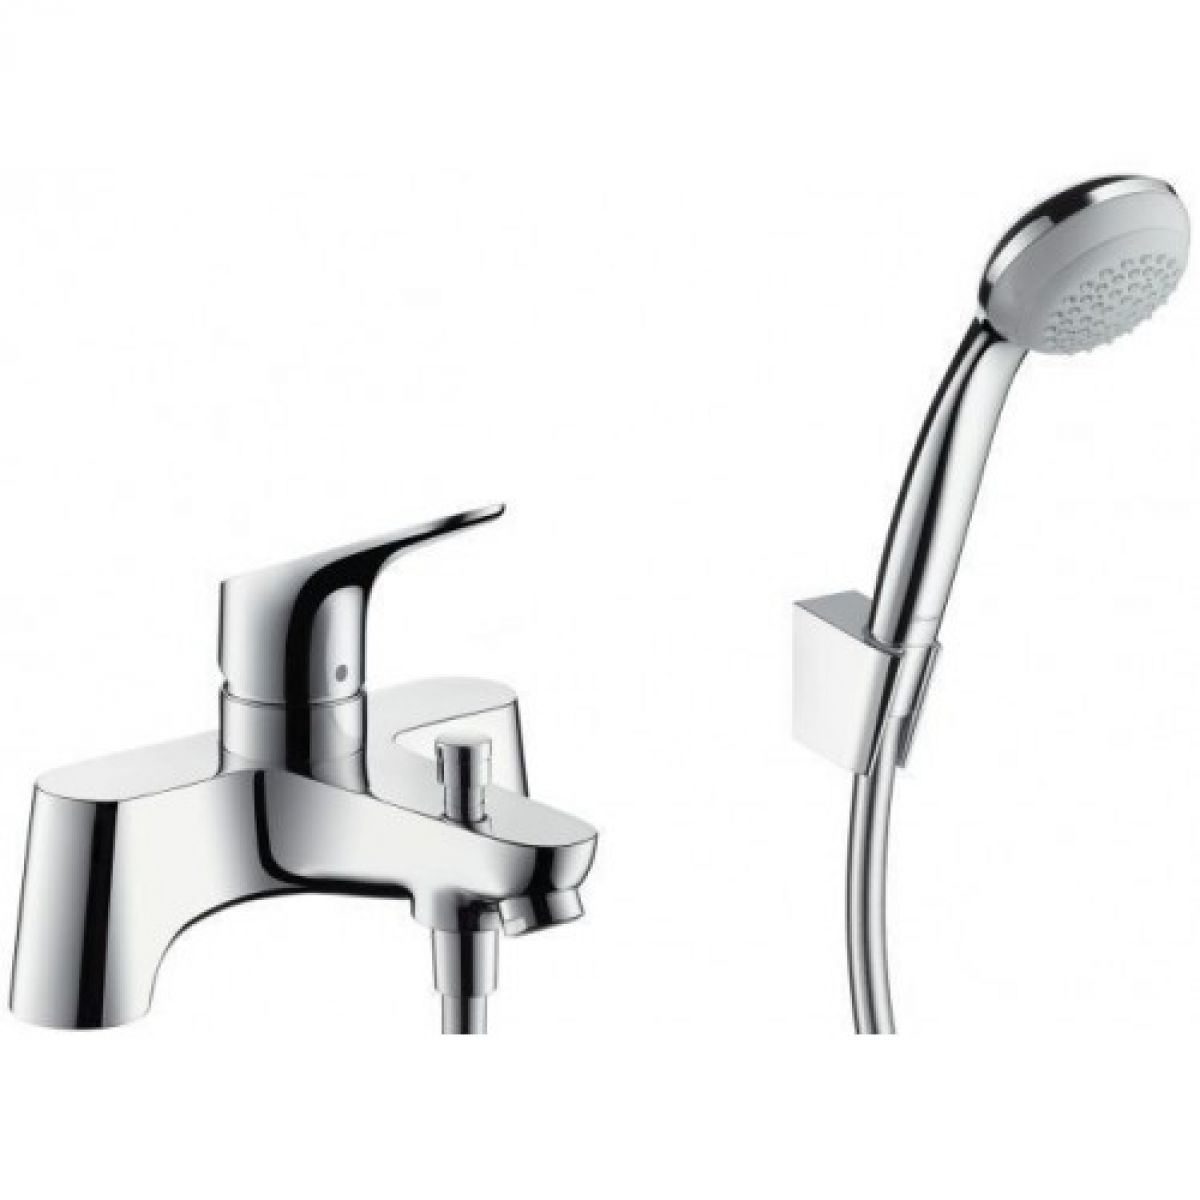 hansgrohe bathroom. hansgrohe focus single lever bath shower mixer tap bathroom